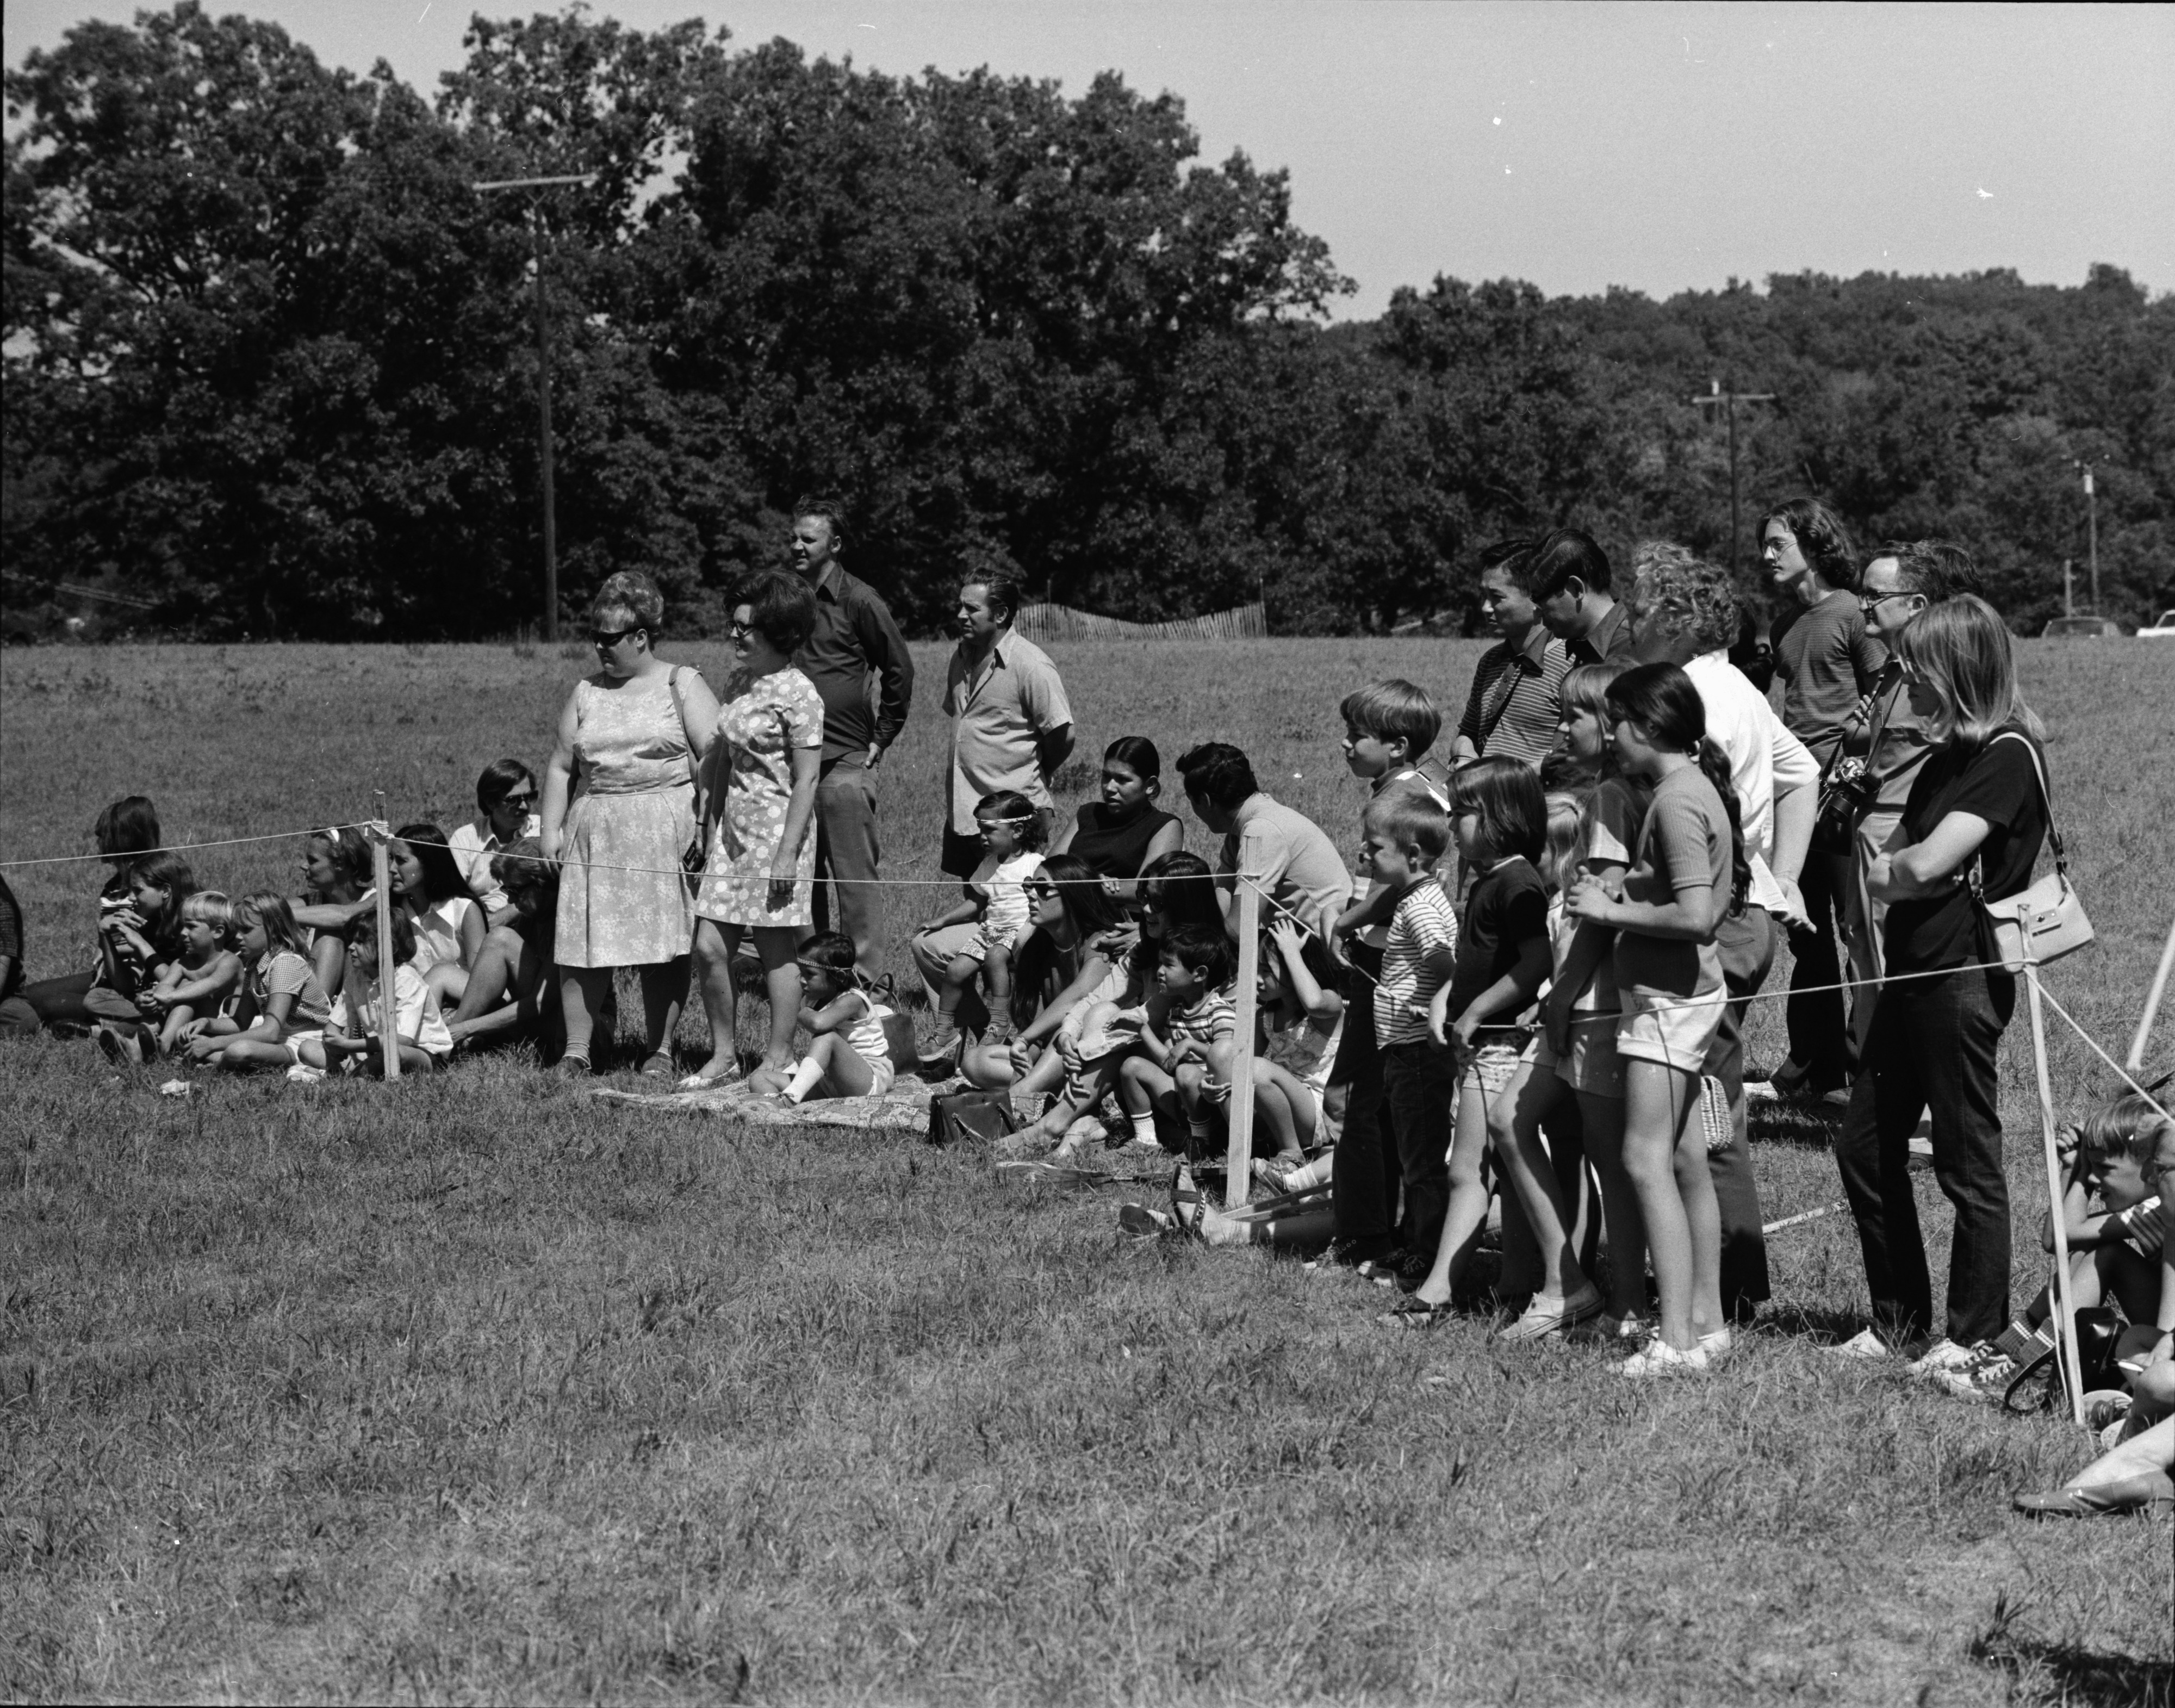 Watching the Michigan Indian Powwow, Knights of Columbus Park, Dexter Rd., August 1971 image